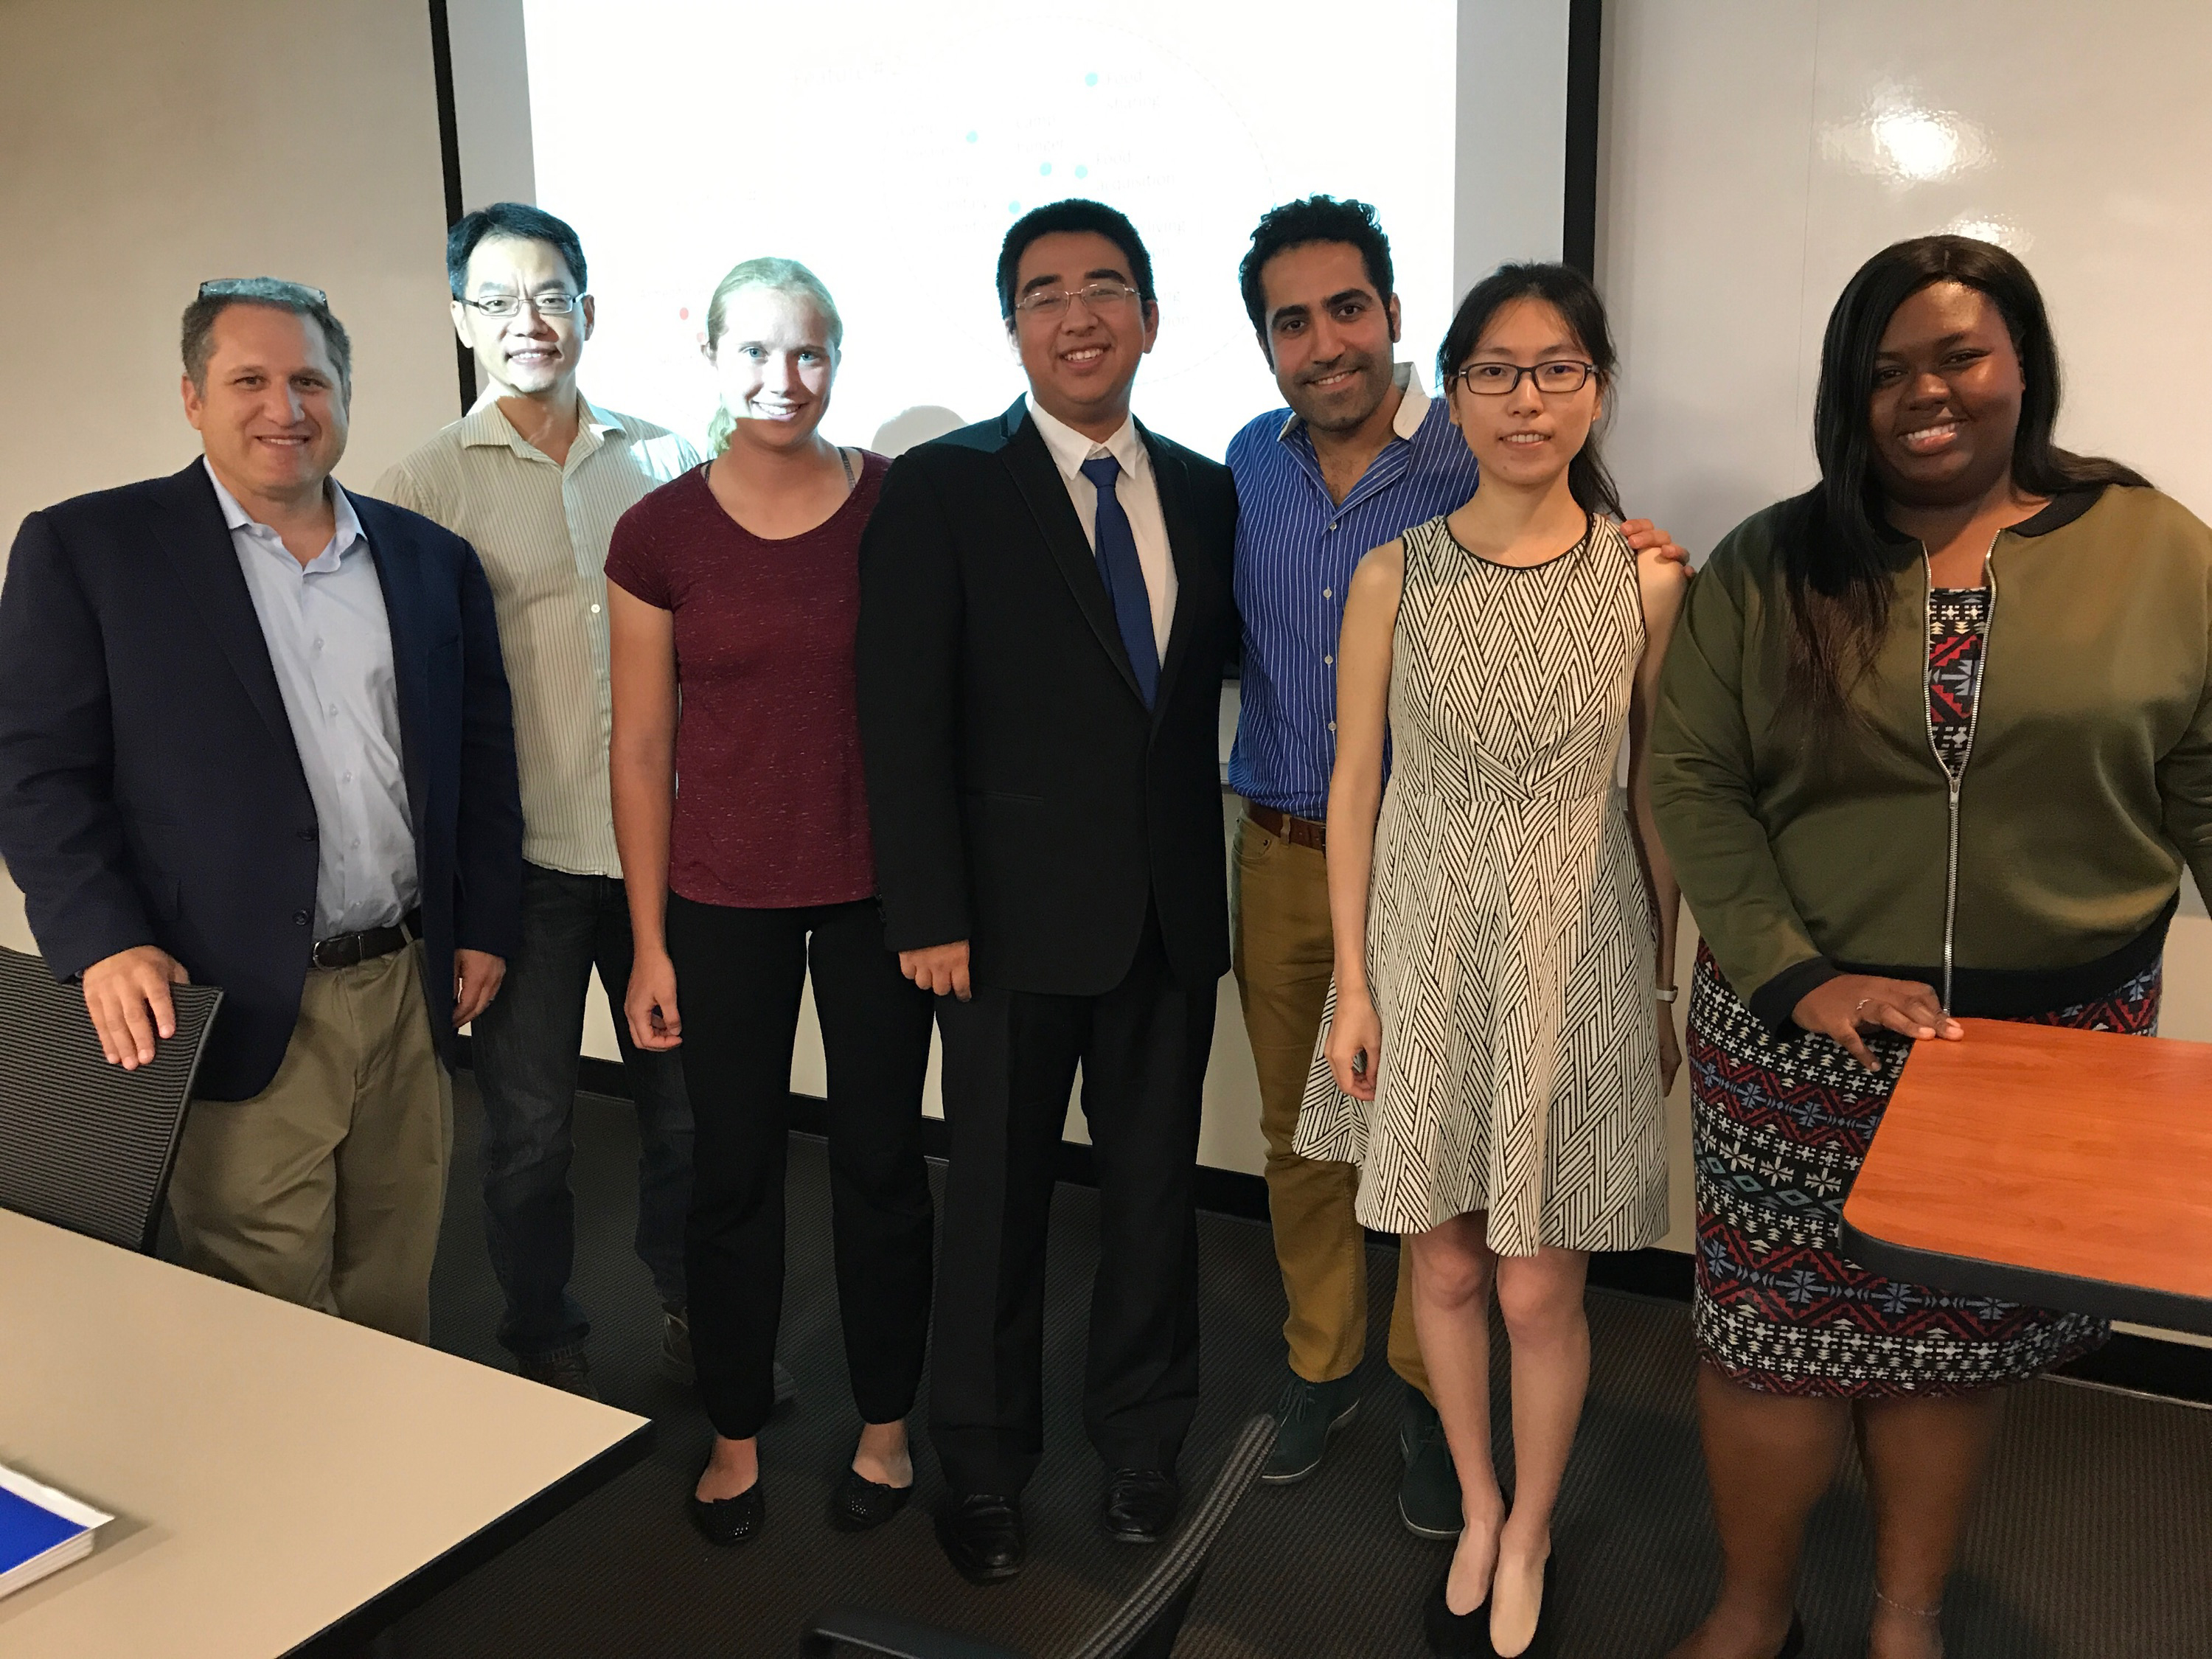 Sam Gustman and Mills Chang, left, and the group with advisor Ehsan Ebrahimzadeh (third from right)